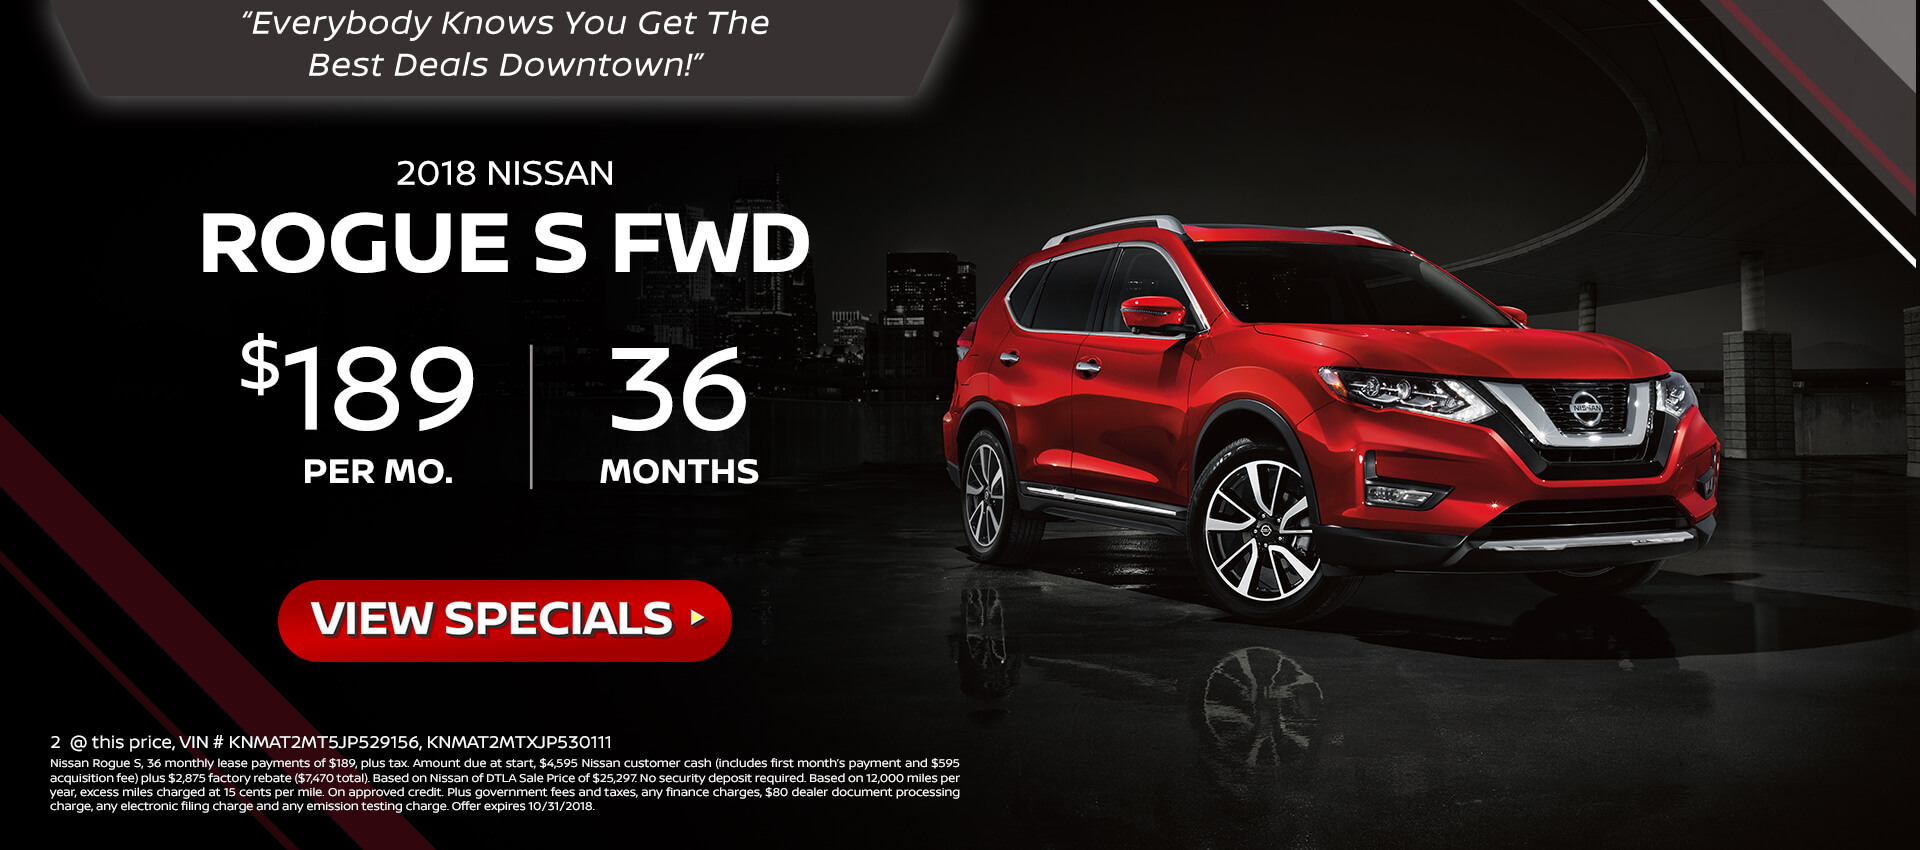 Rogue. Pathfinder. Altima. Leaf. New Specials. Nissan Of Downtown L.A.